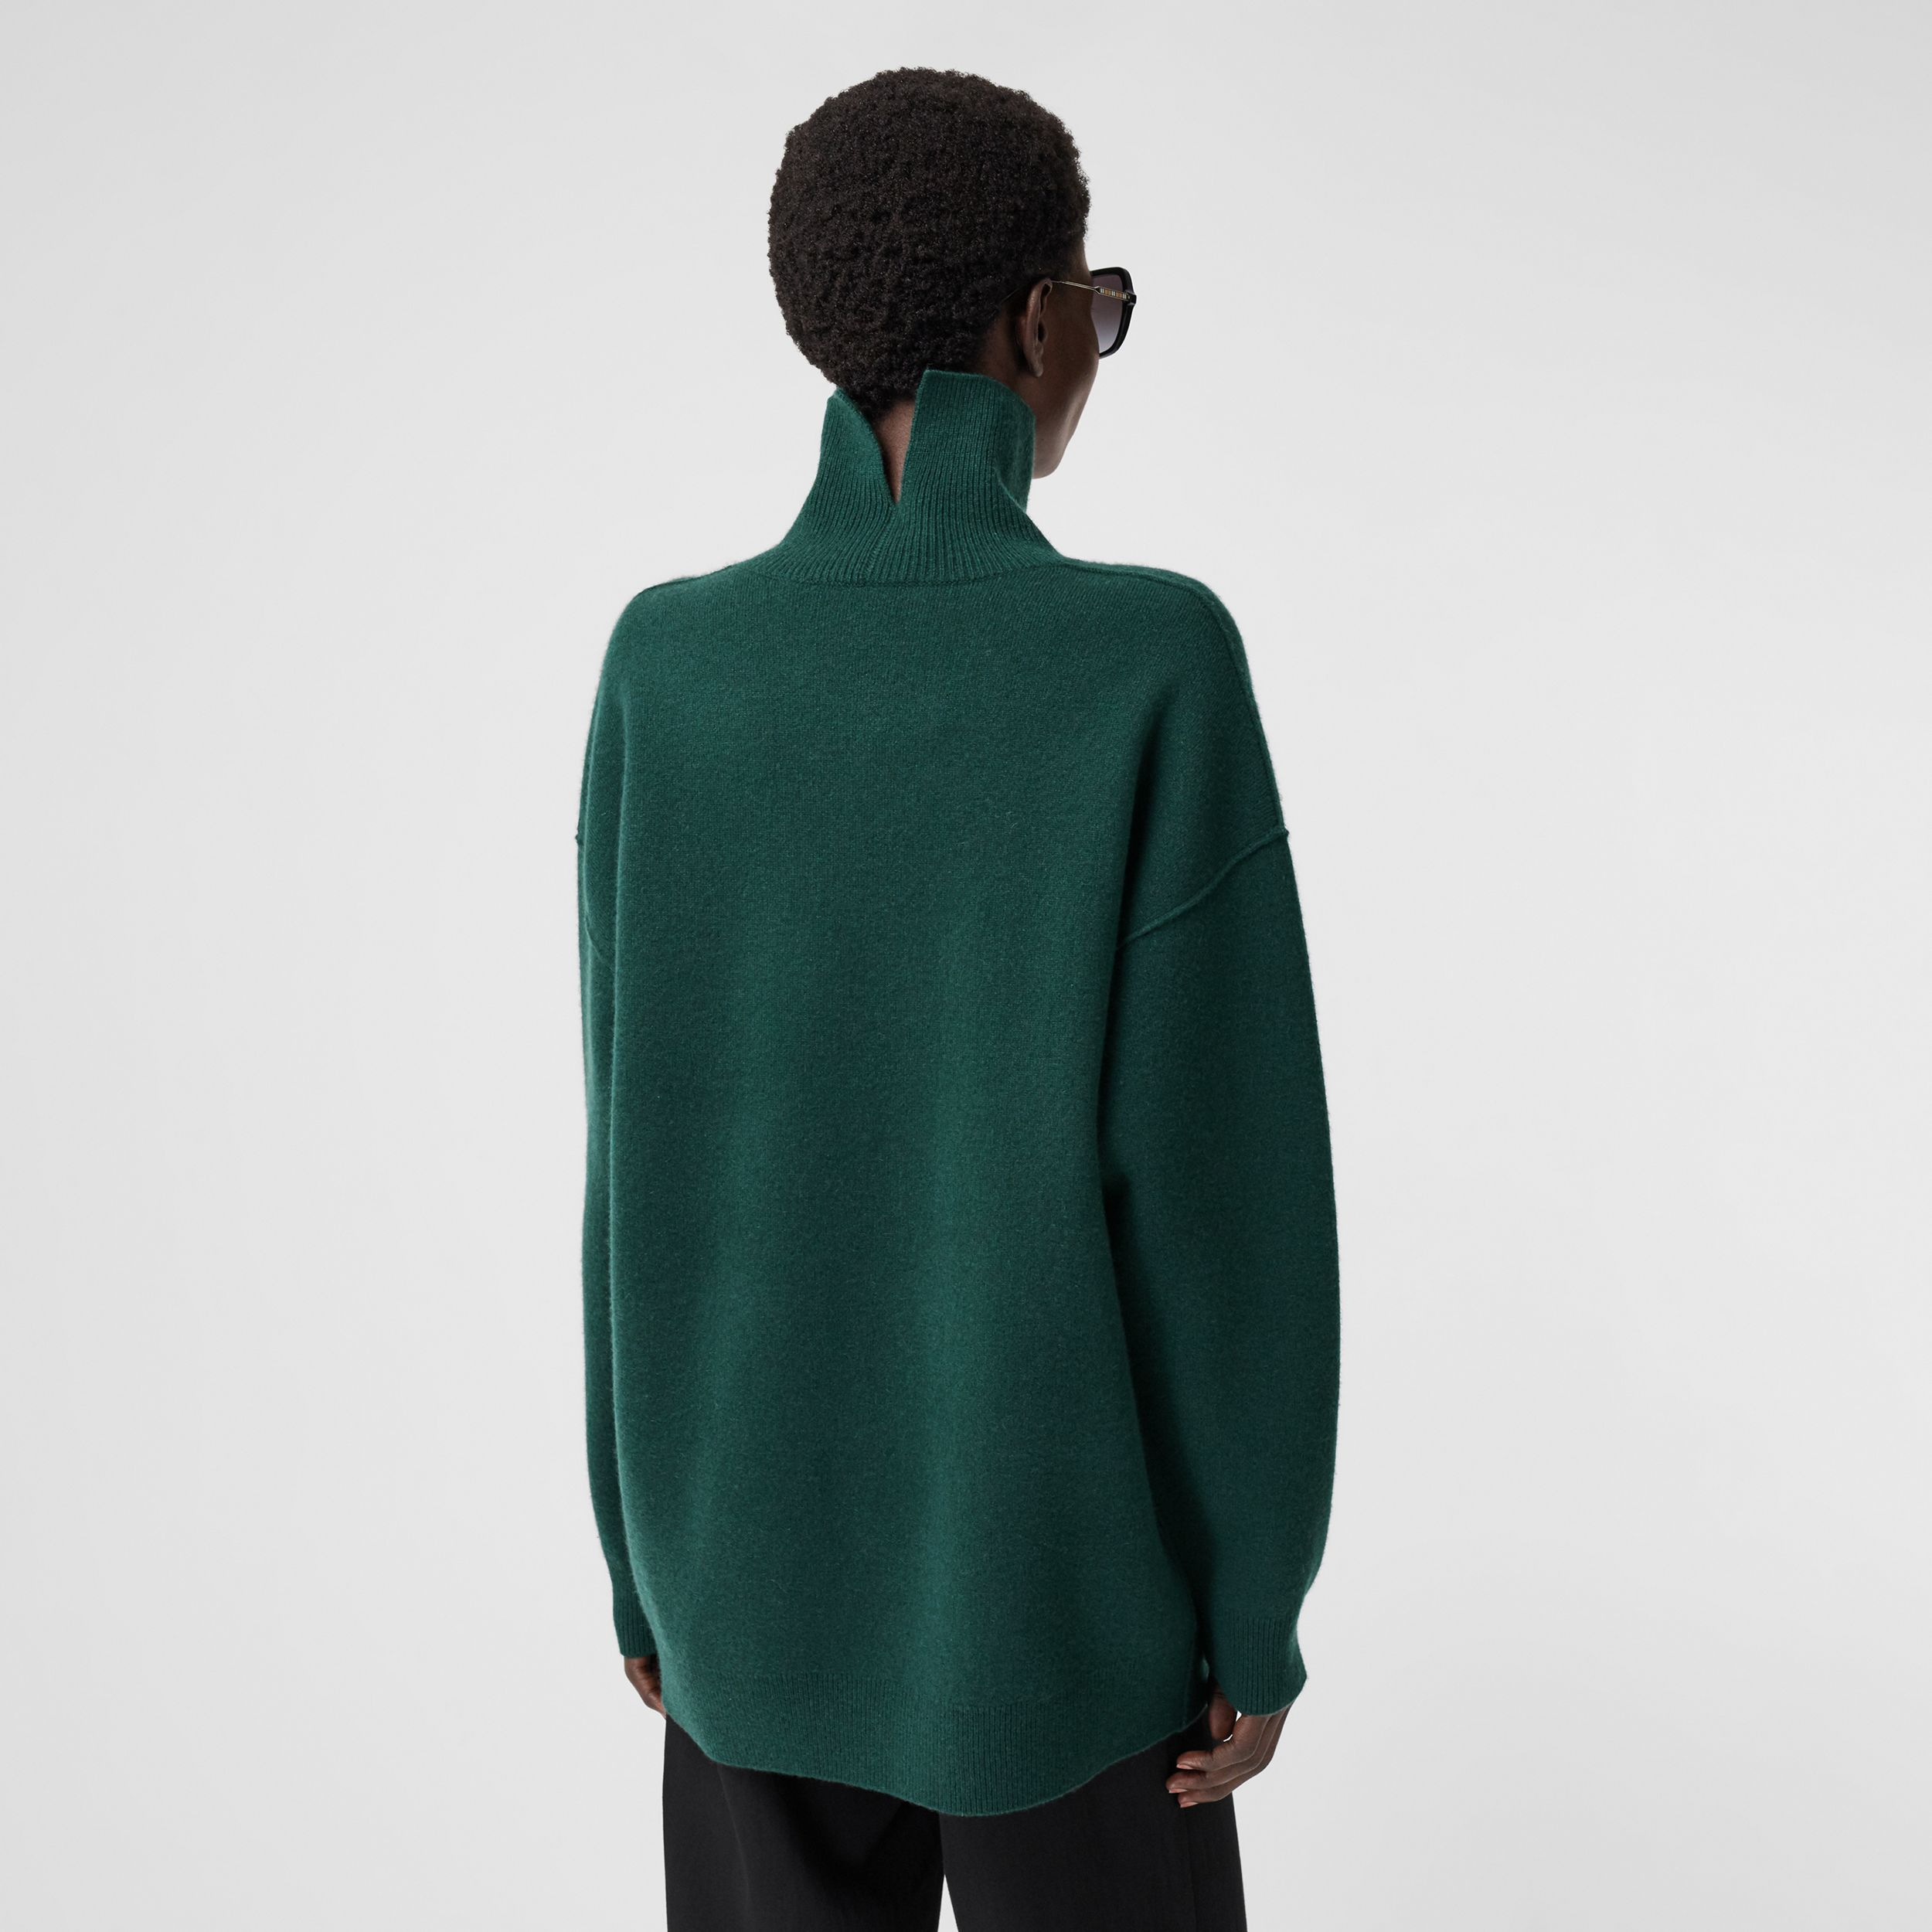 Monogram Motif Cashmere Blend Funnel Neck Sweater in Bottle Green - Women | Burberry - 3